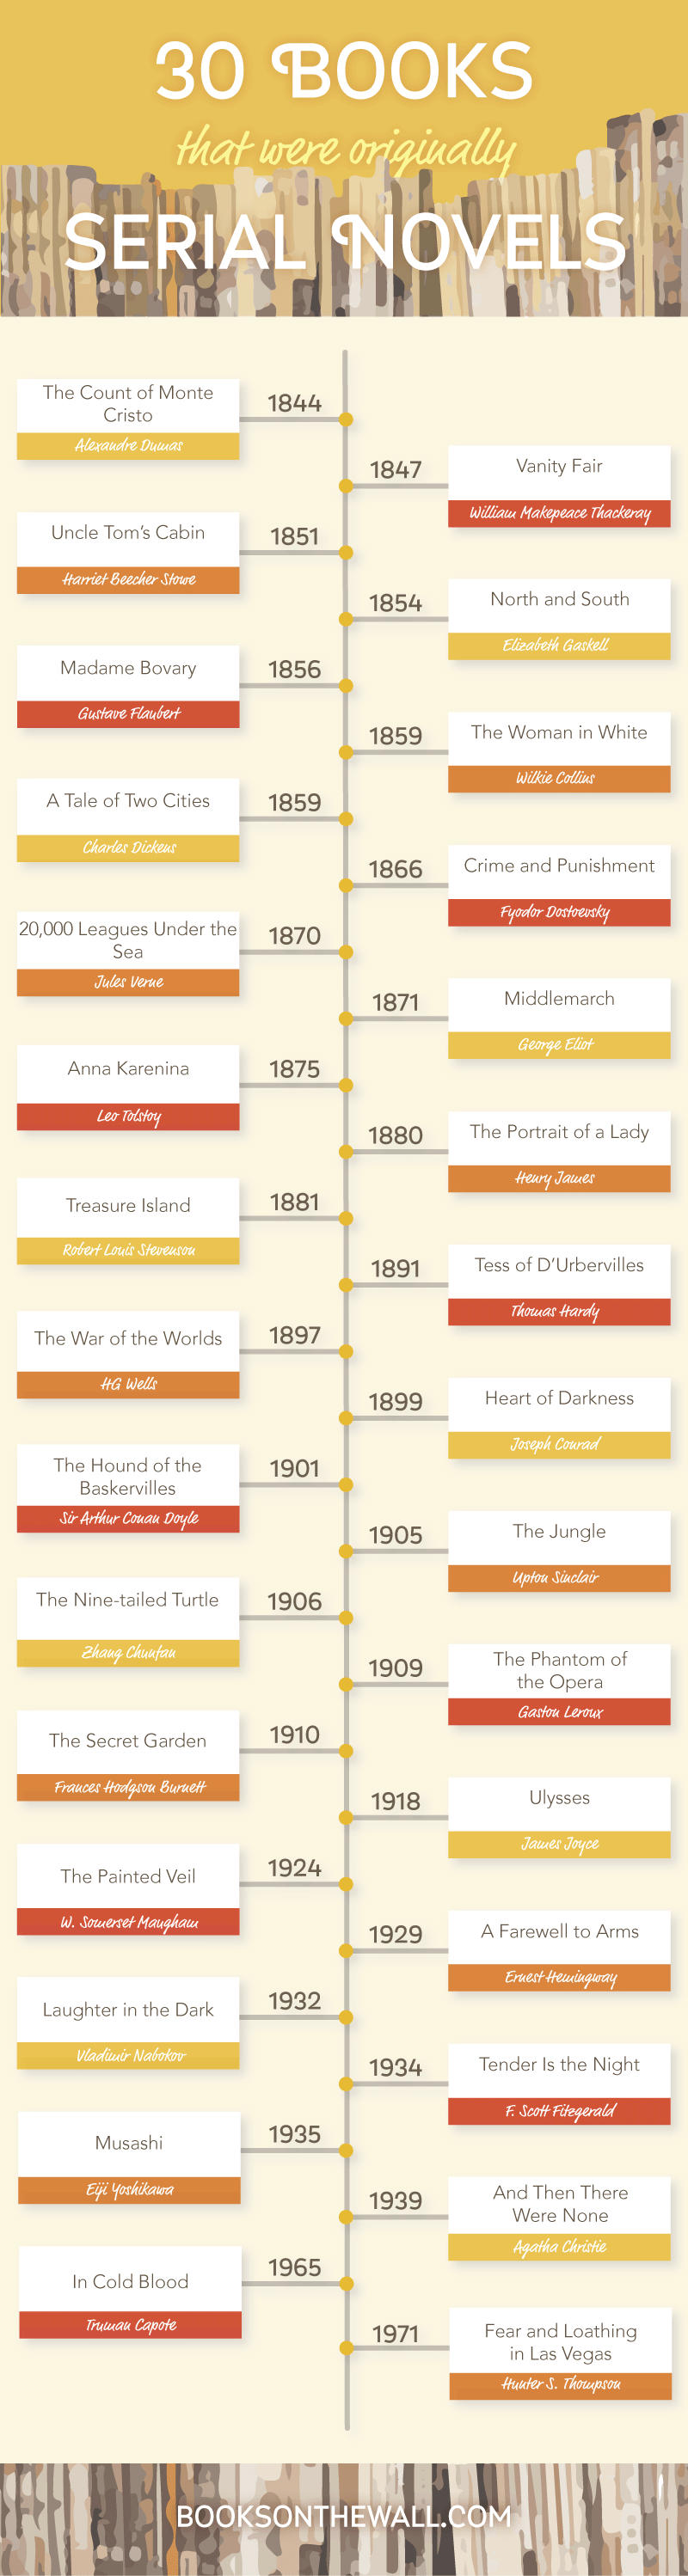 BOOK INFOGRAPHIC: Books that were first serialized novels